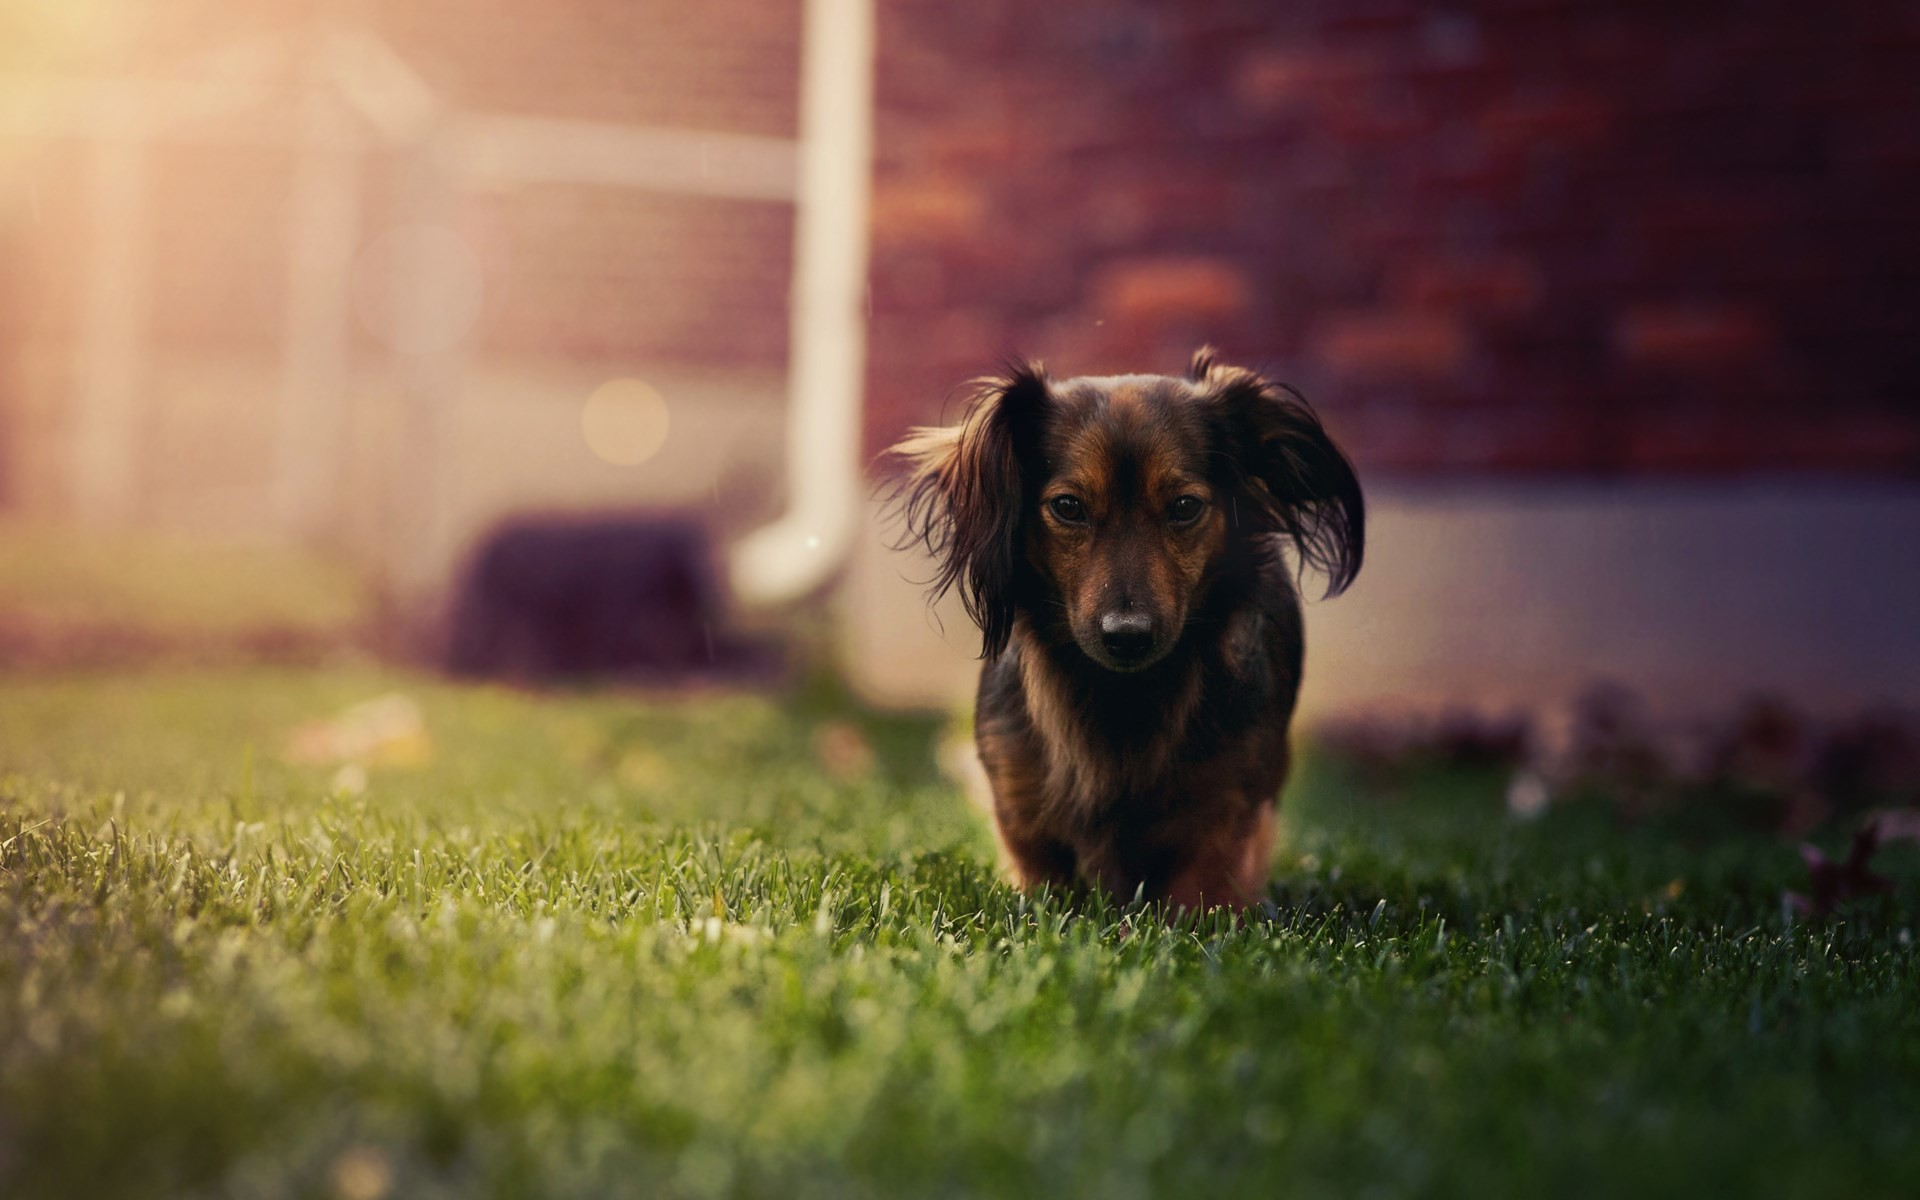 1920x1200 #1947271, dachshund category - HD Widescreen Wallpapers - dachshund pic